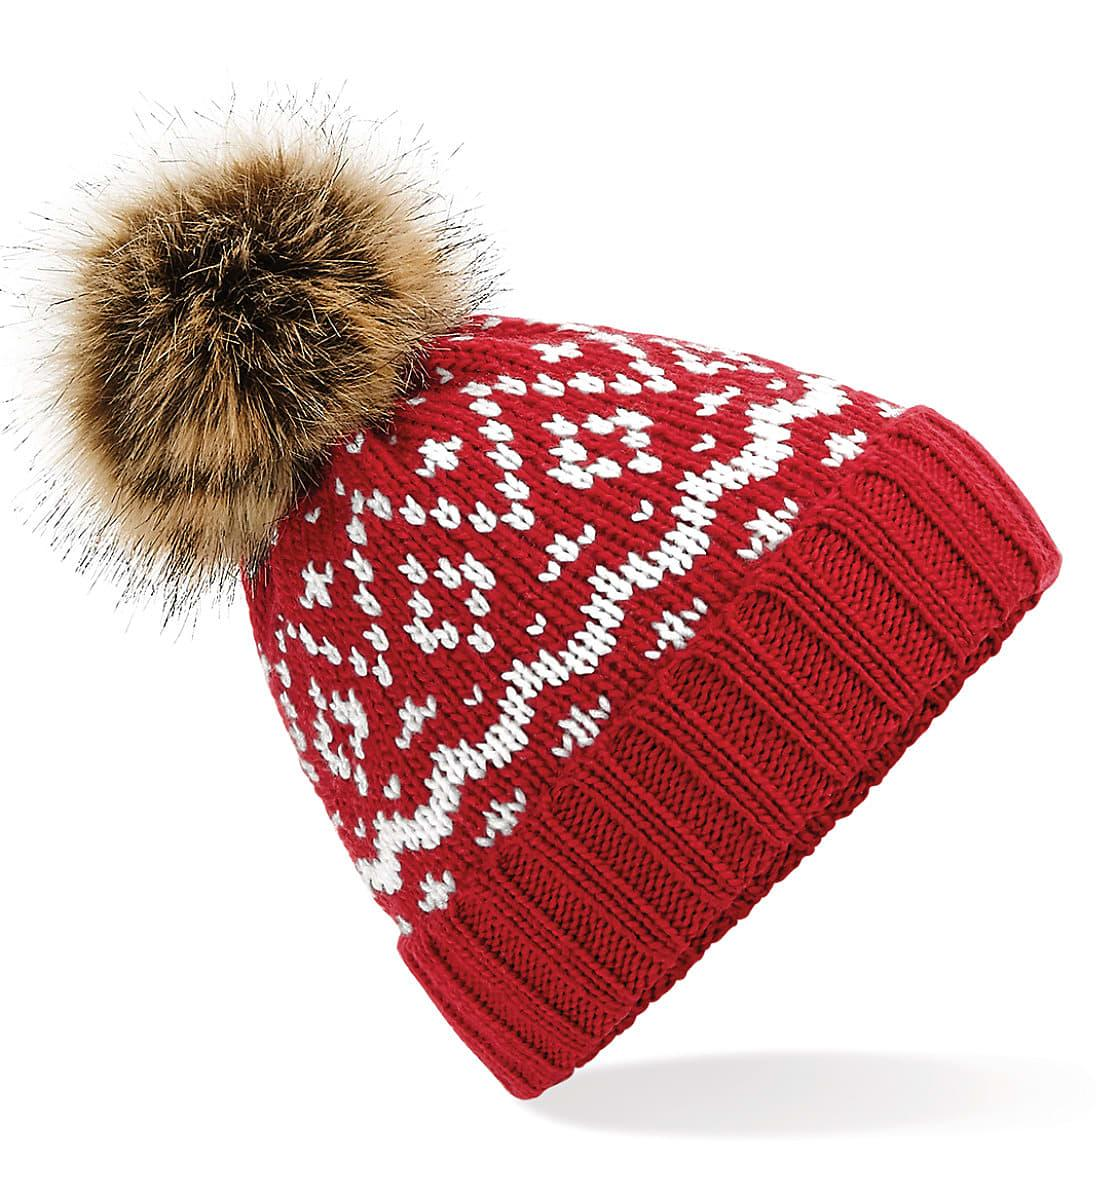 Beechfield Fair Isle Pop Pom Beanie Hat in Classic Red / White (Product Code: B411)